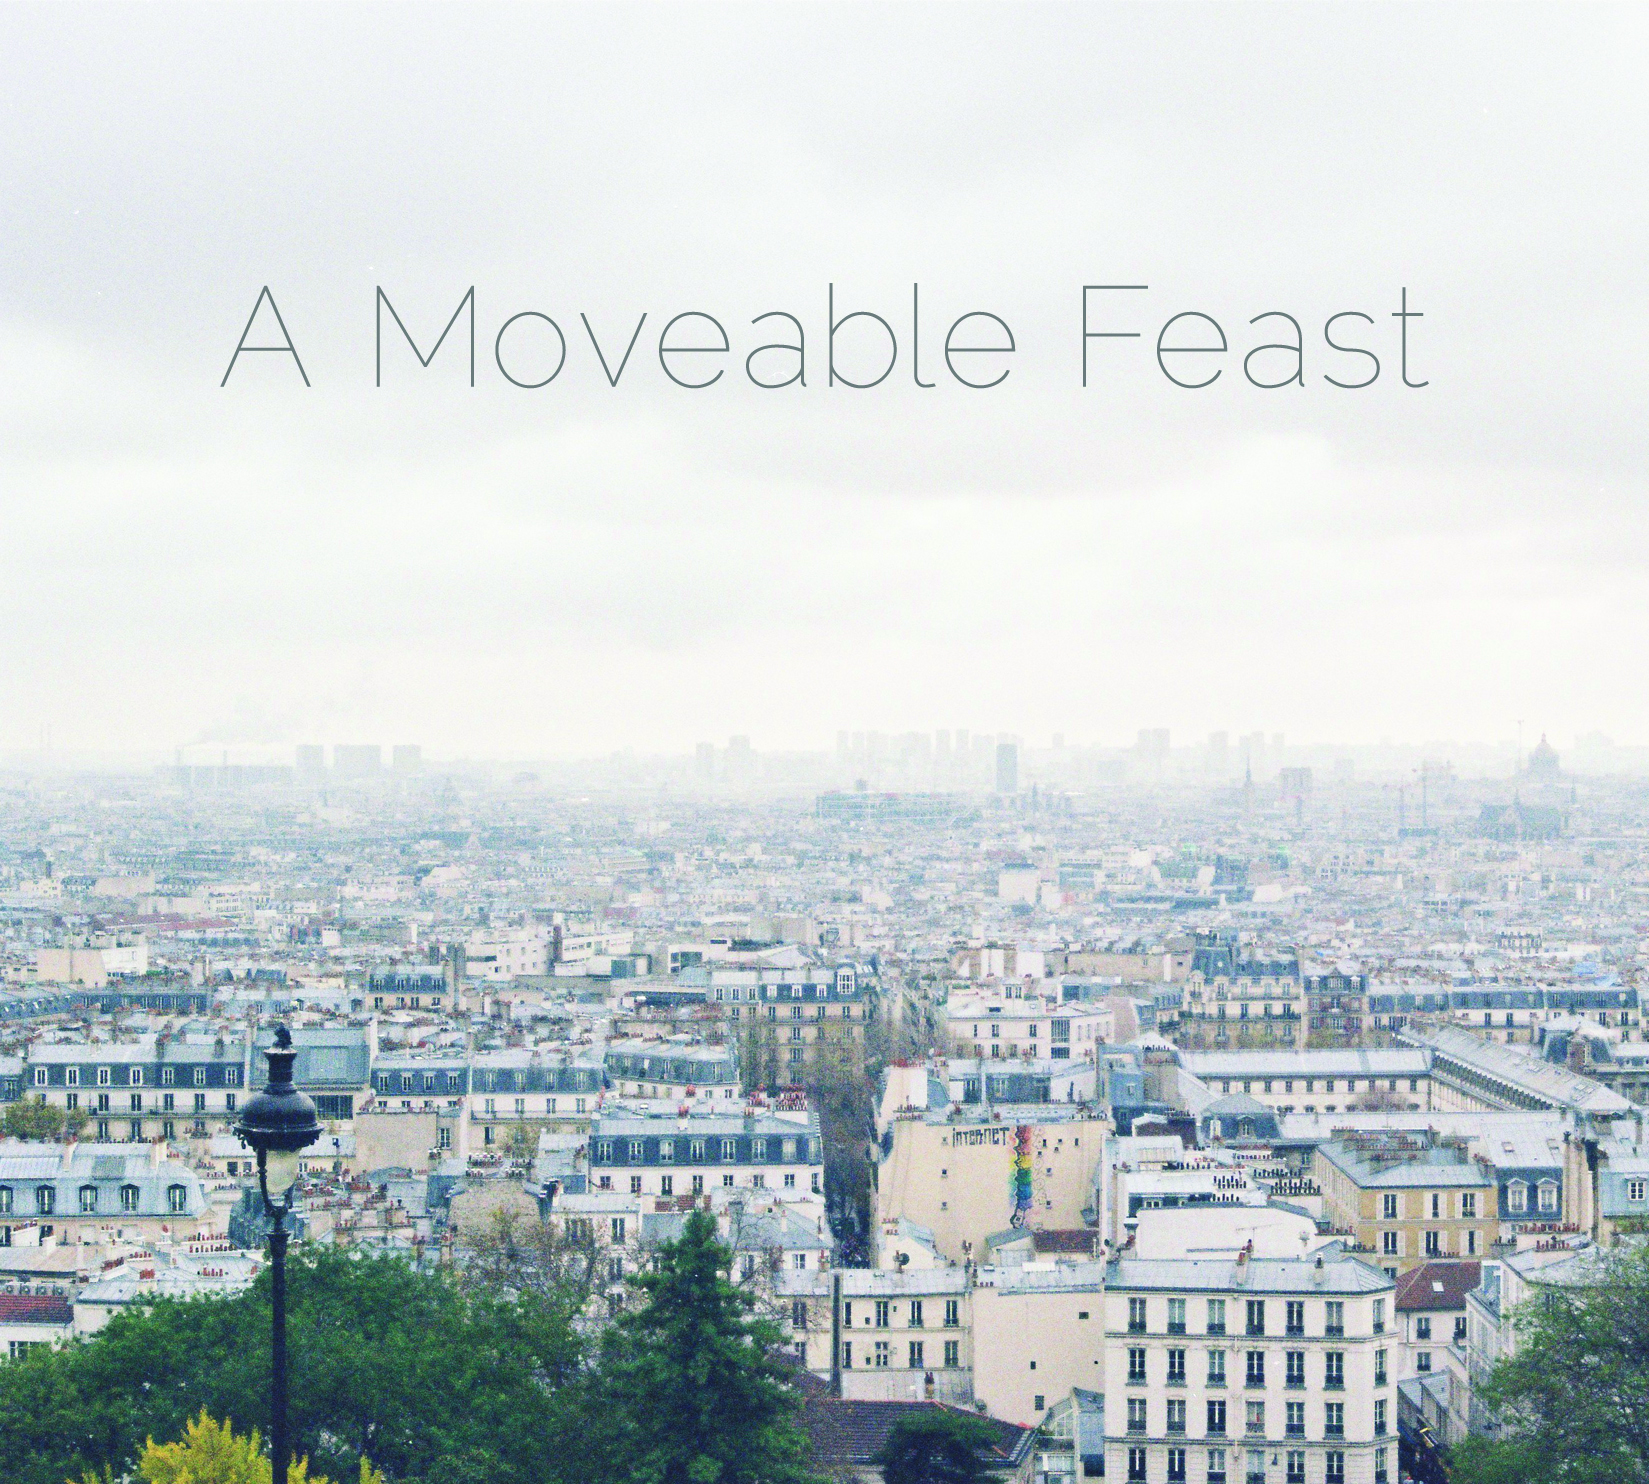 Mark Pringle - A Moveable Feast